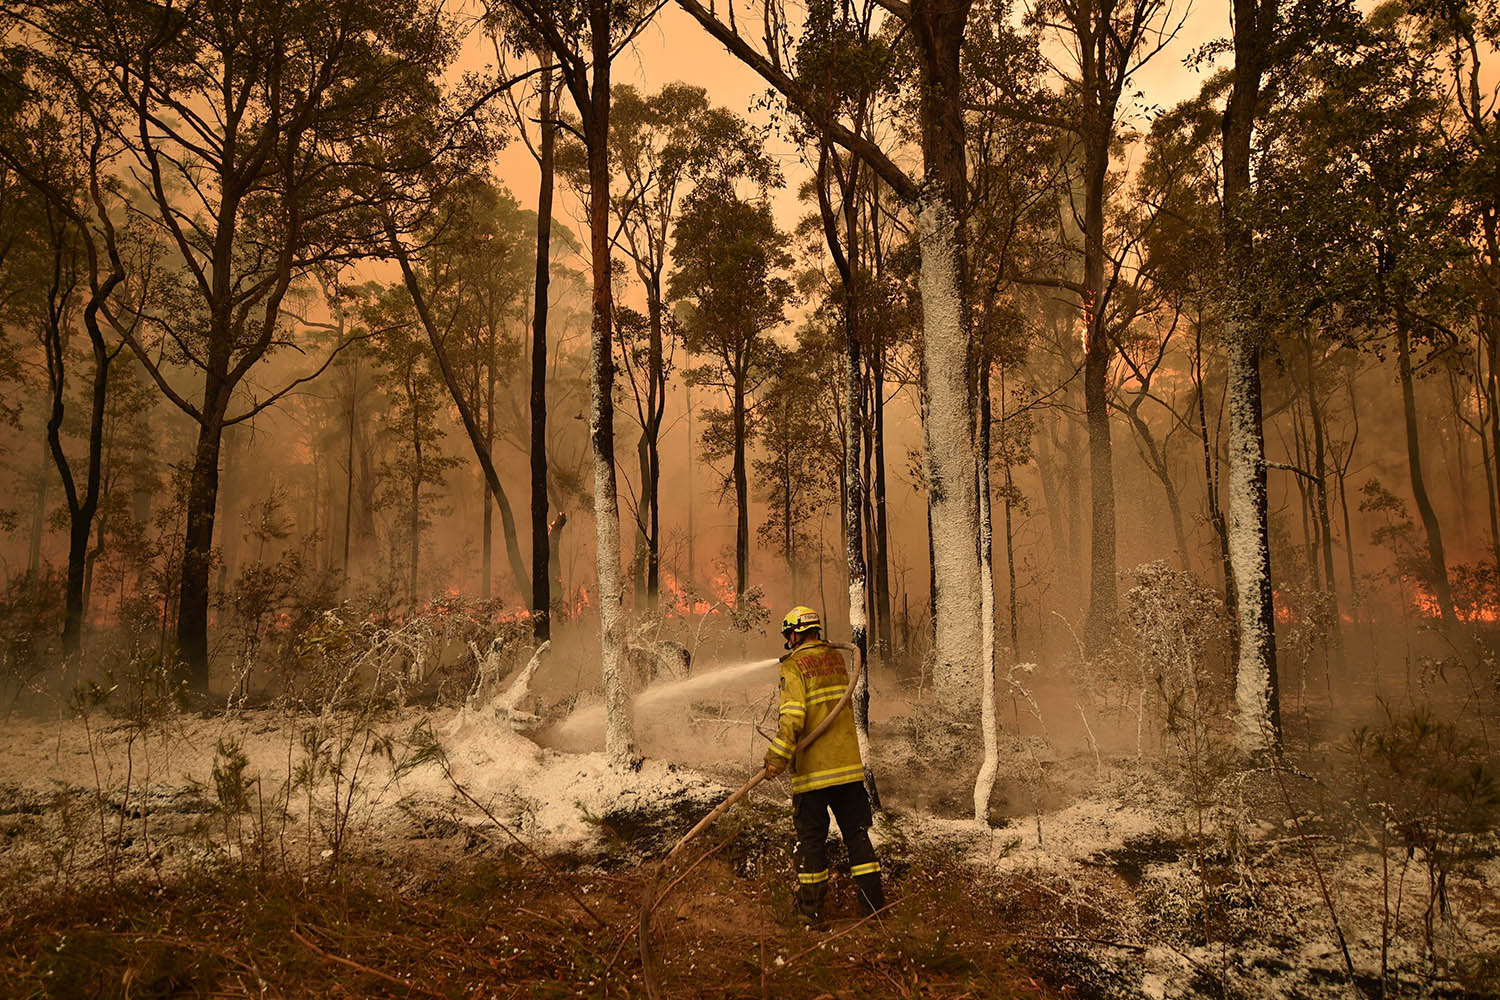 A firefighter sprays foam retardant on a back burn ahead of a fire front in the New South Wales town of Jerrawangala on Jan. 1. PETER PARKS/AFP via Getty Images